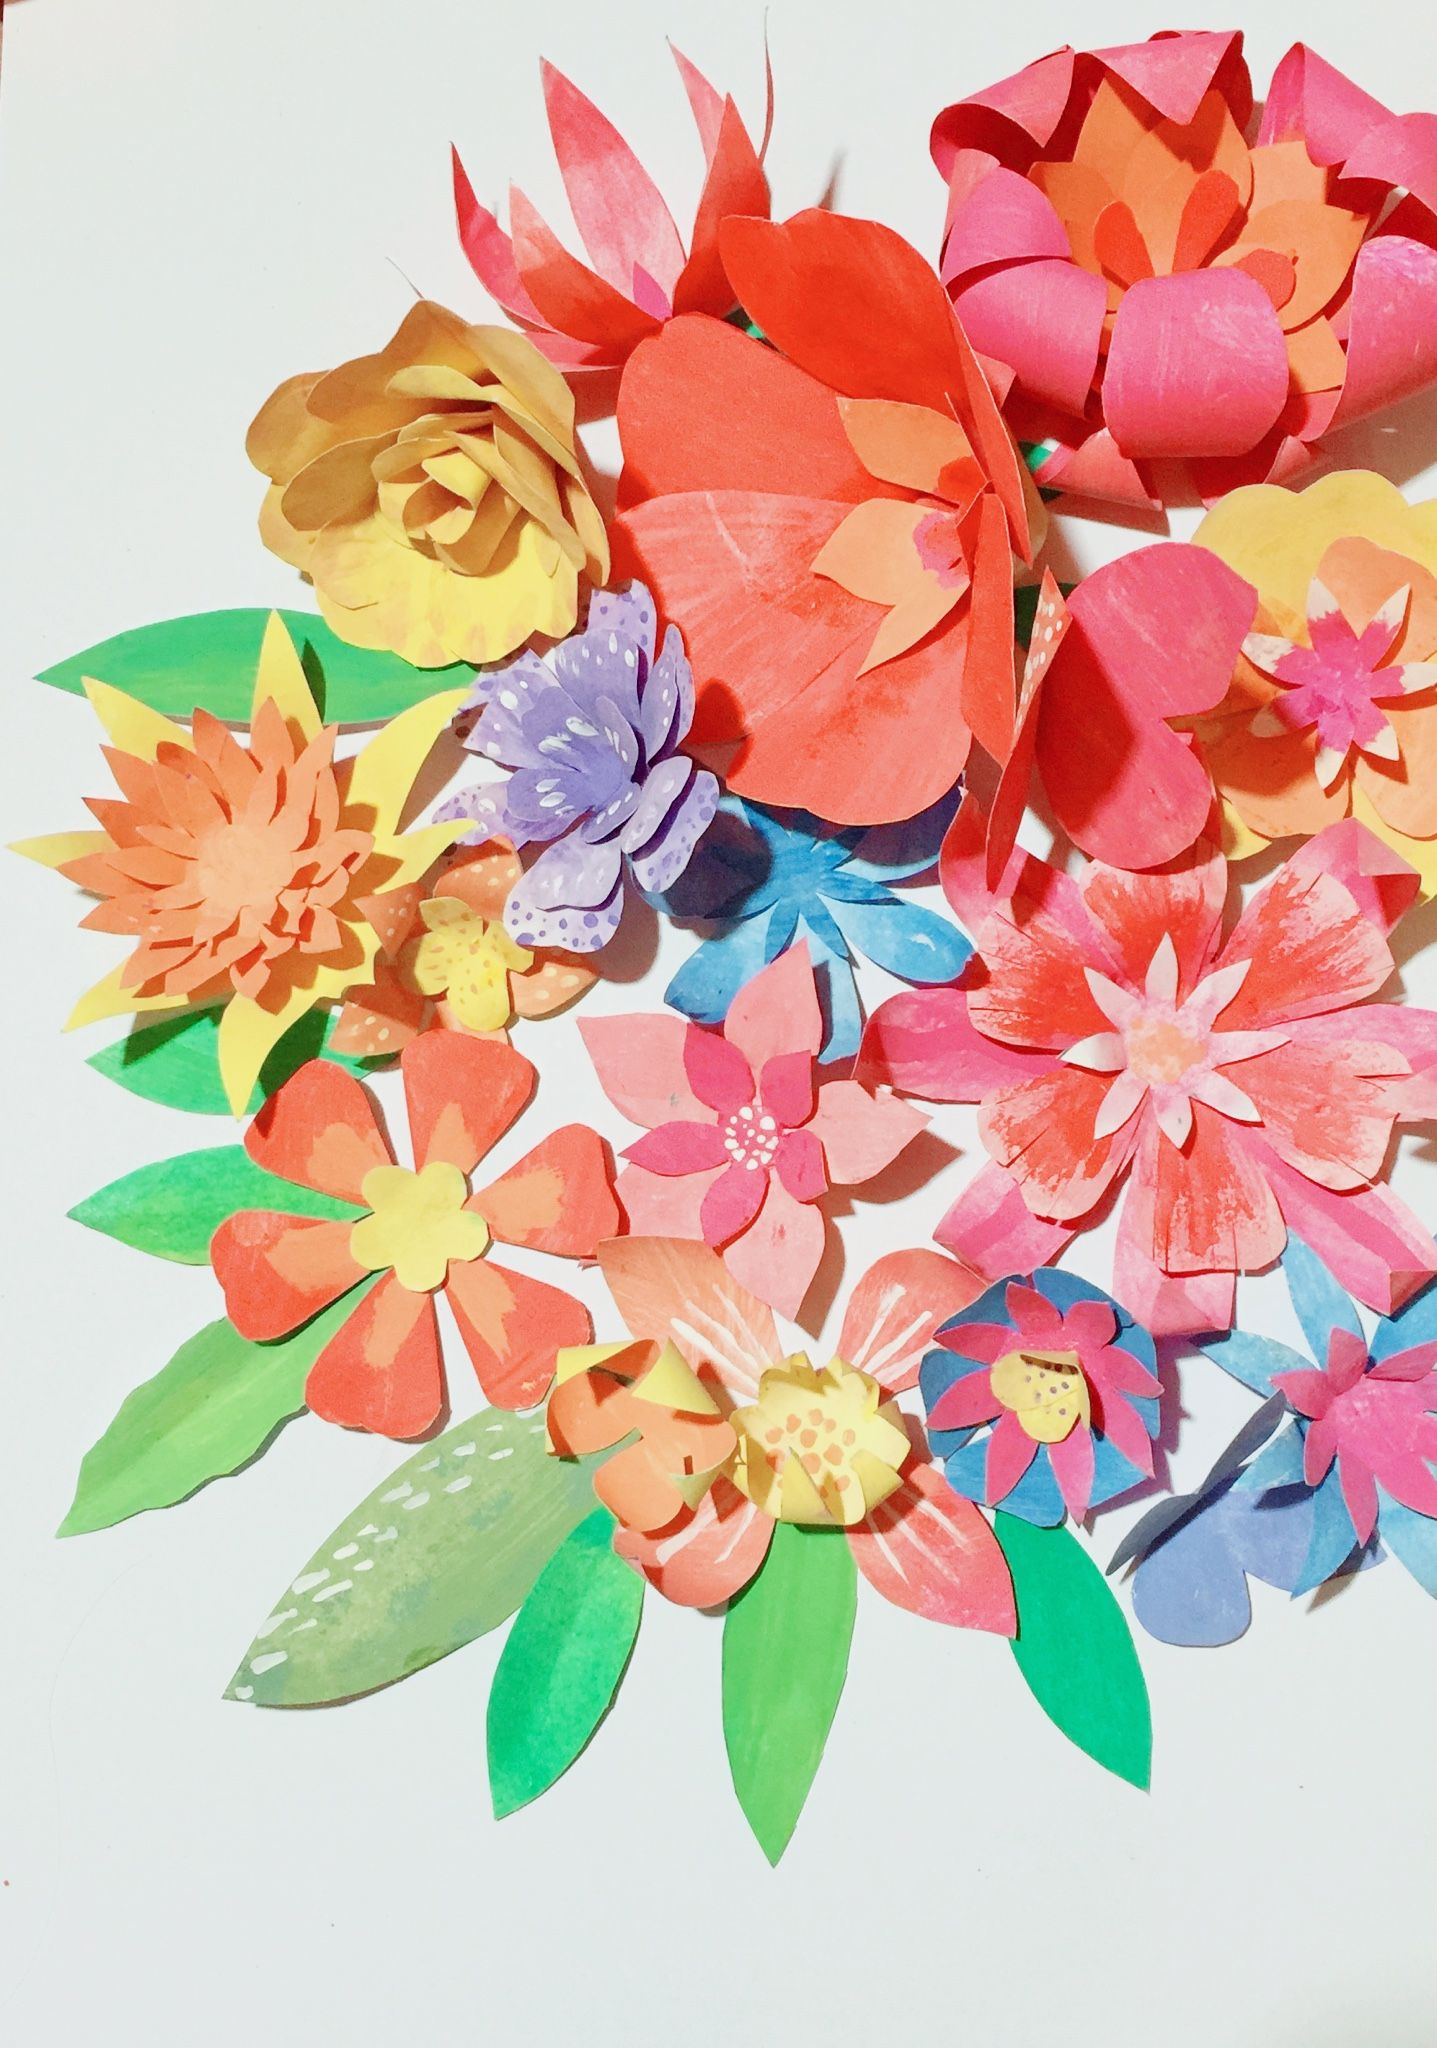 Paper Flowers Diy Tutorial And Templates At Happythought